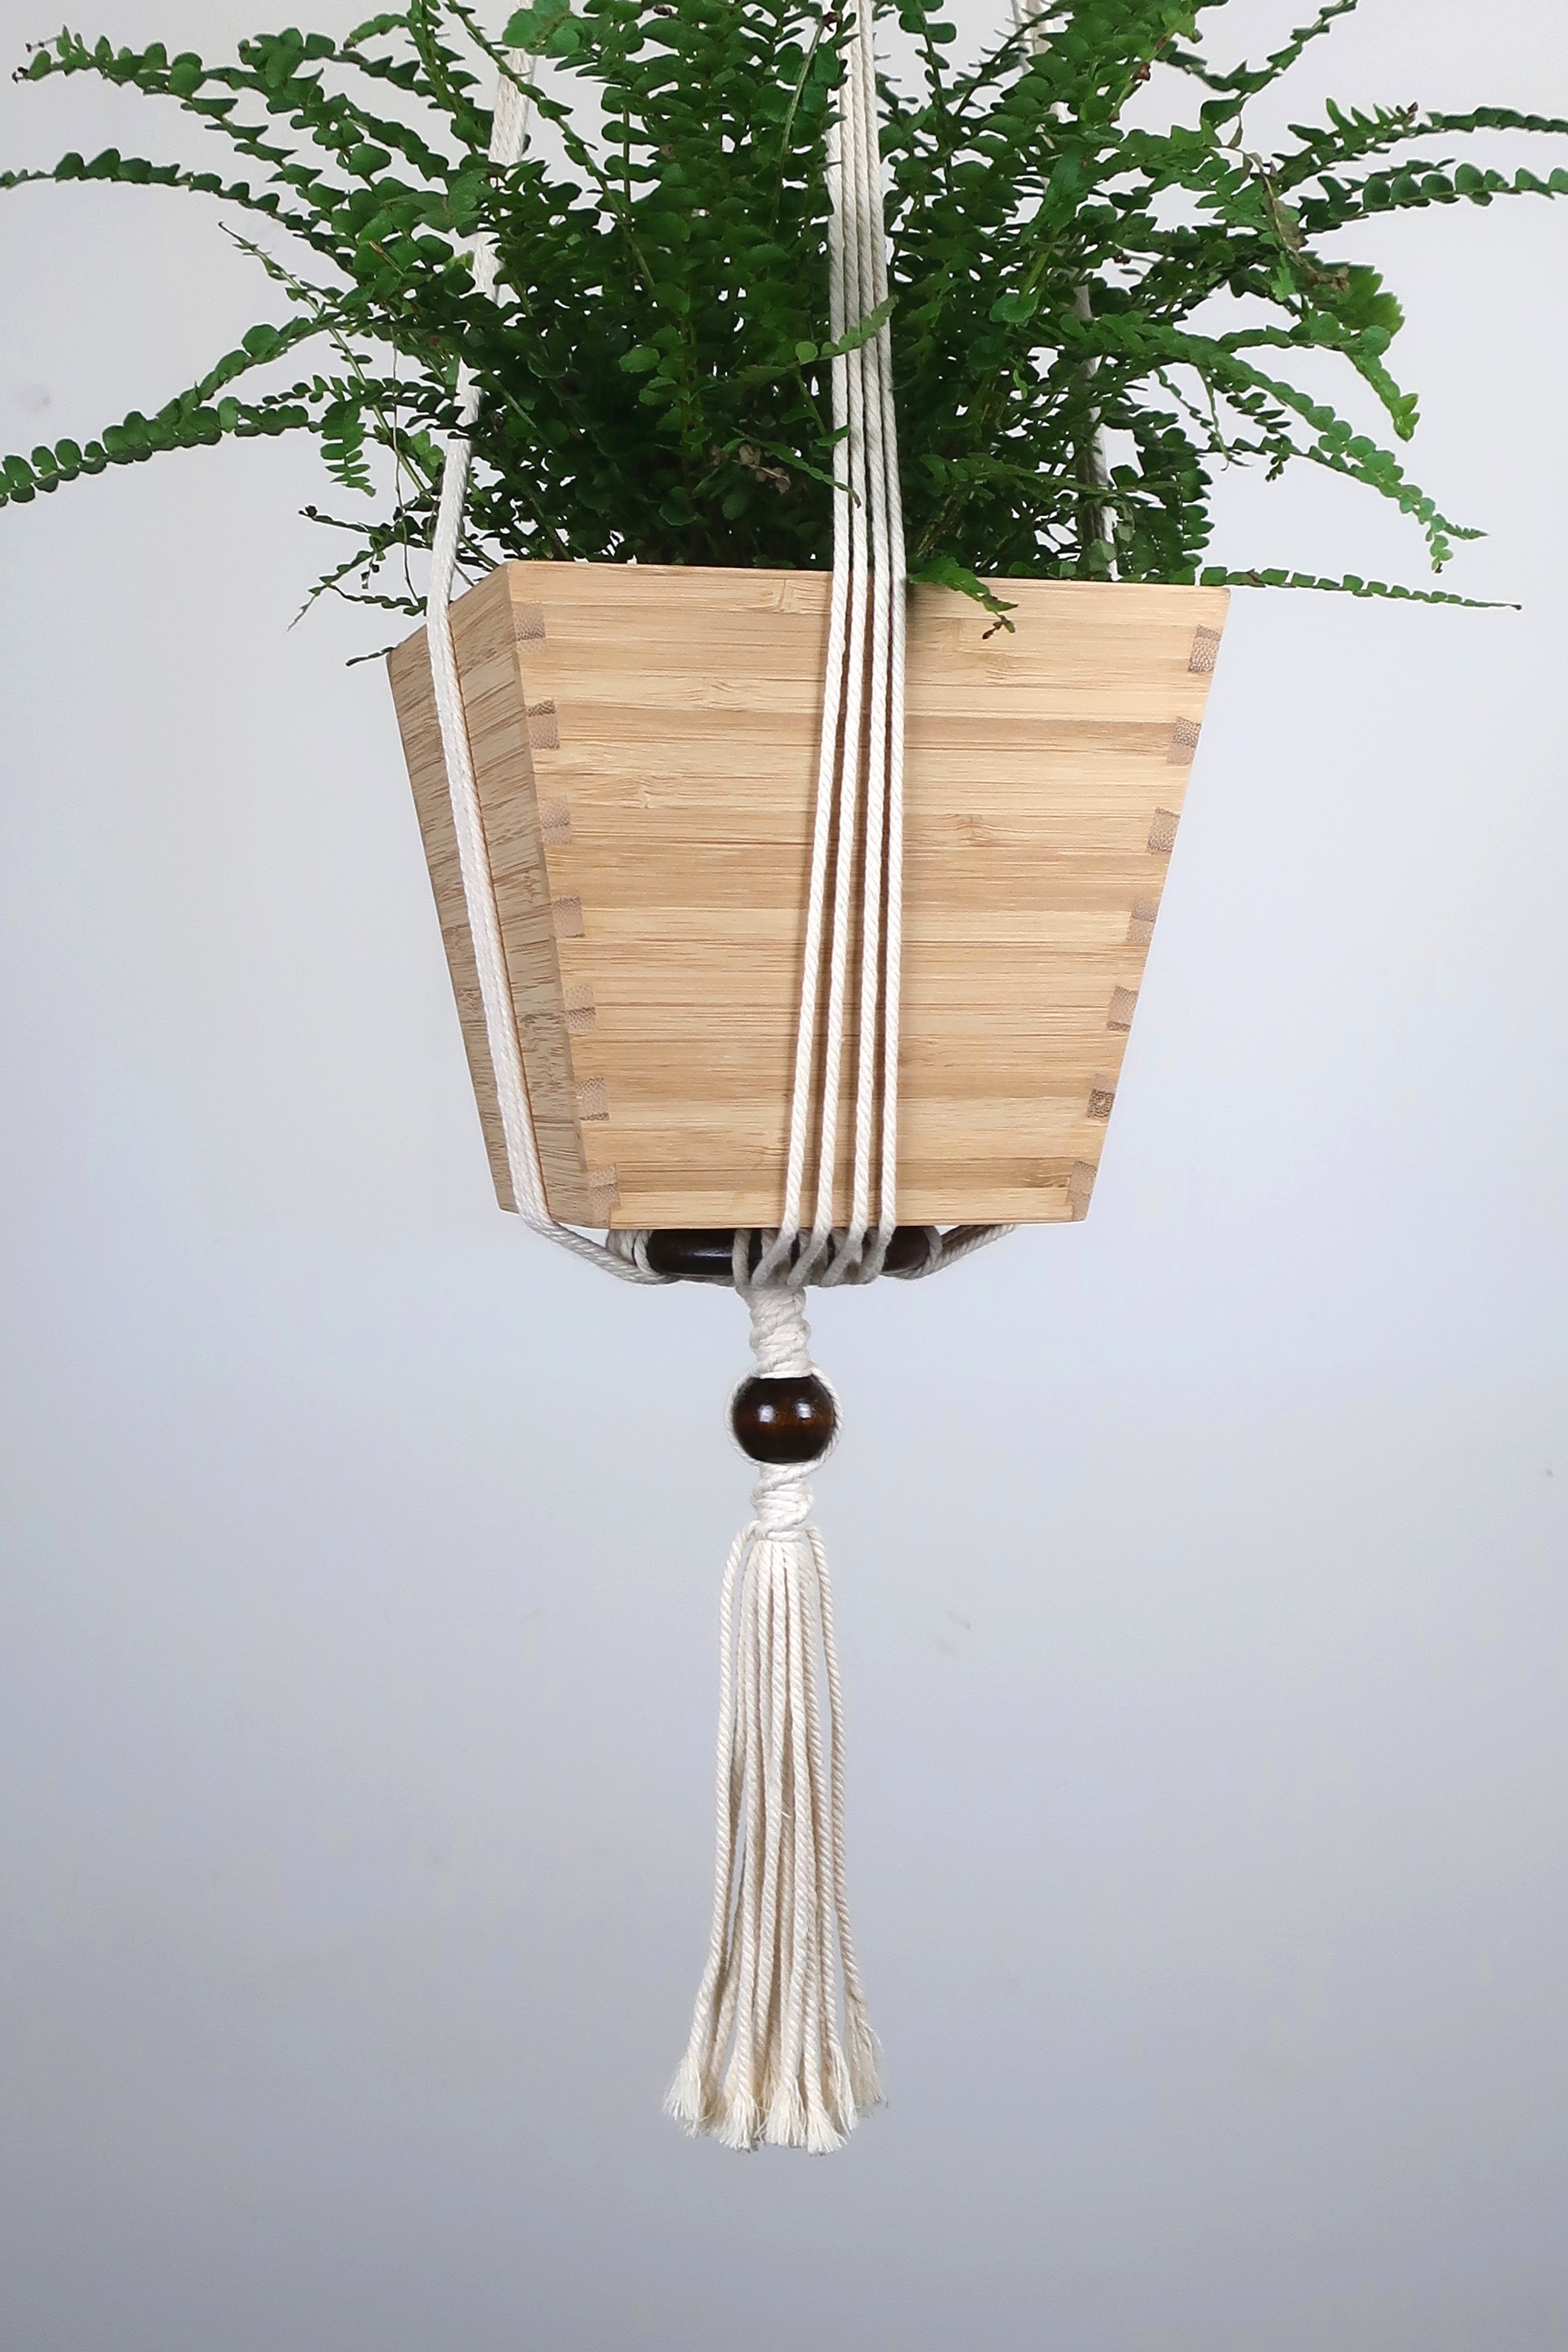 Suspension pour plante en macram bymadjo shanti d co for Suspension pour plante interieur